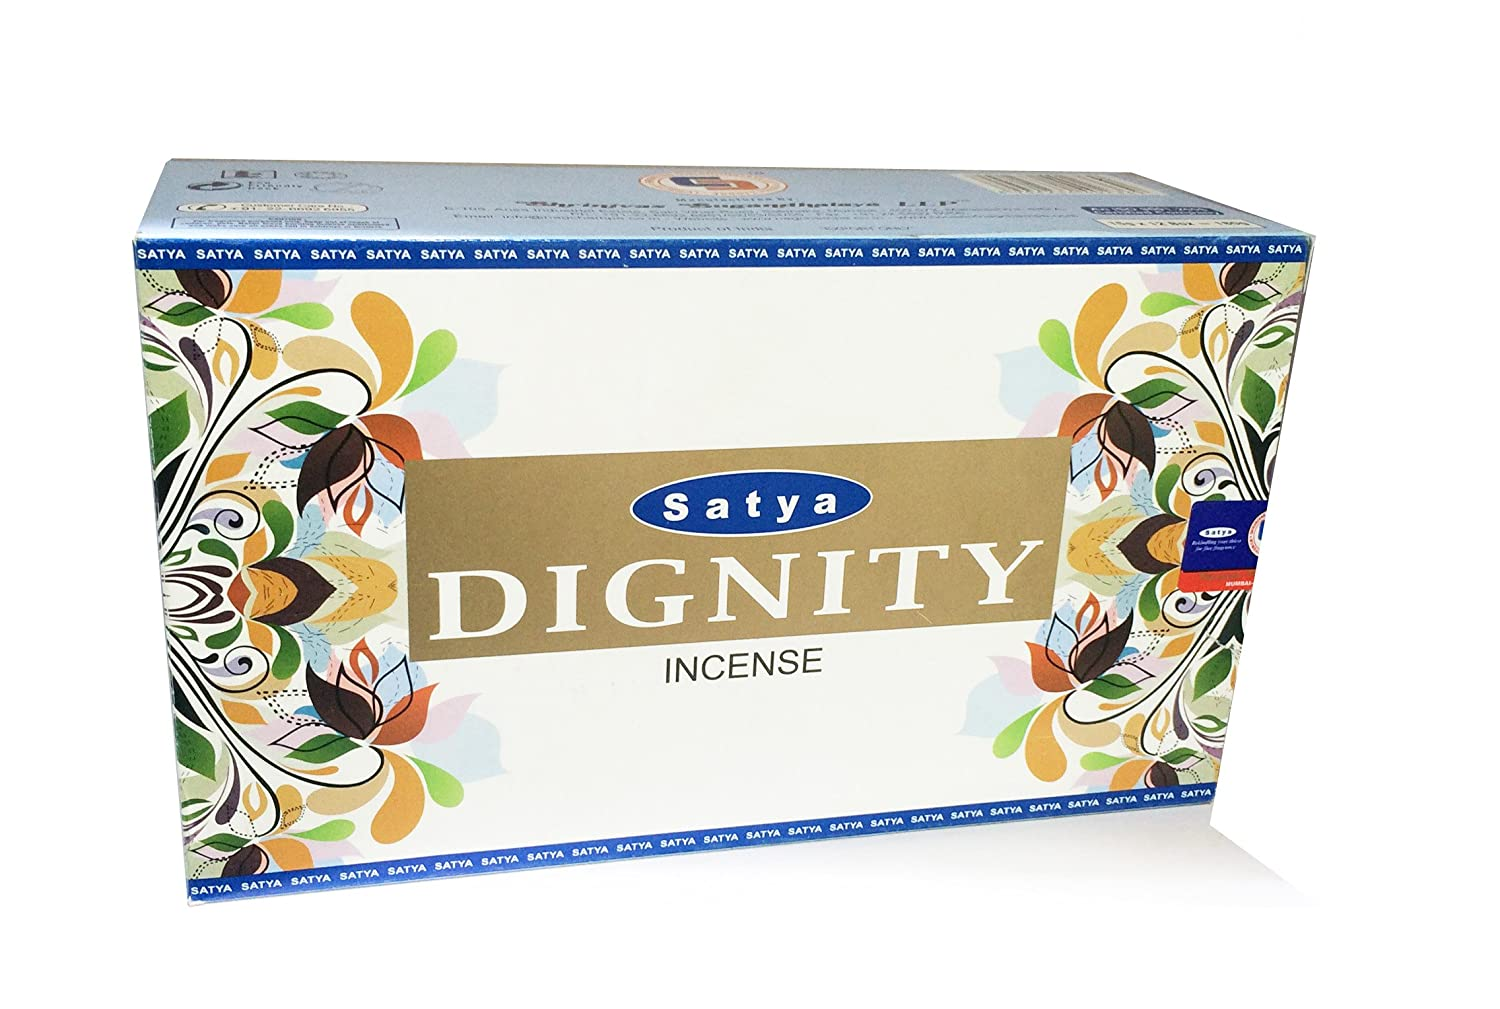 Satya Dignity Fragrance Incense Sticks Agarbattiギフト?–?パックof 12ボックス( 15各) GM - 180?gm